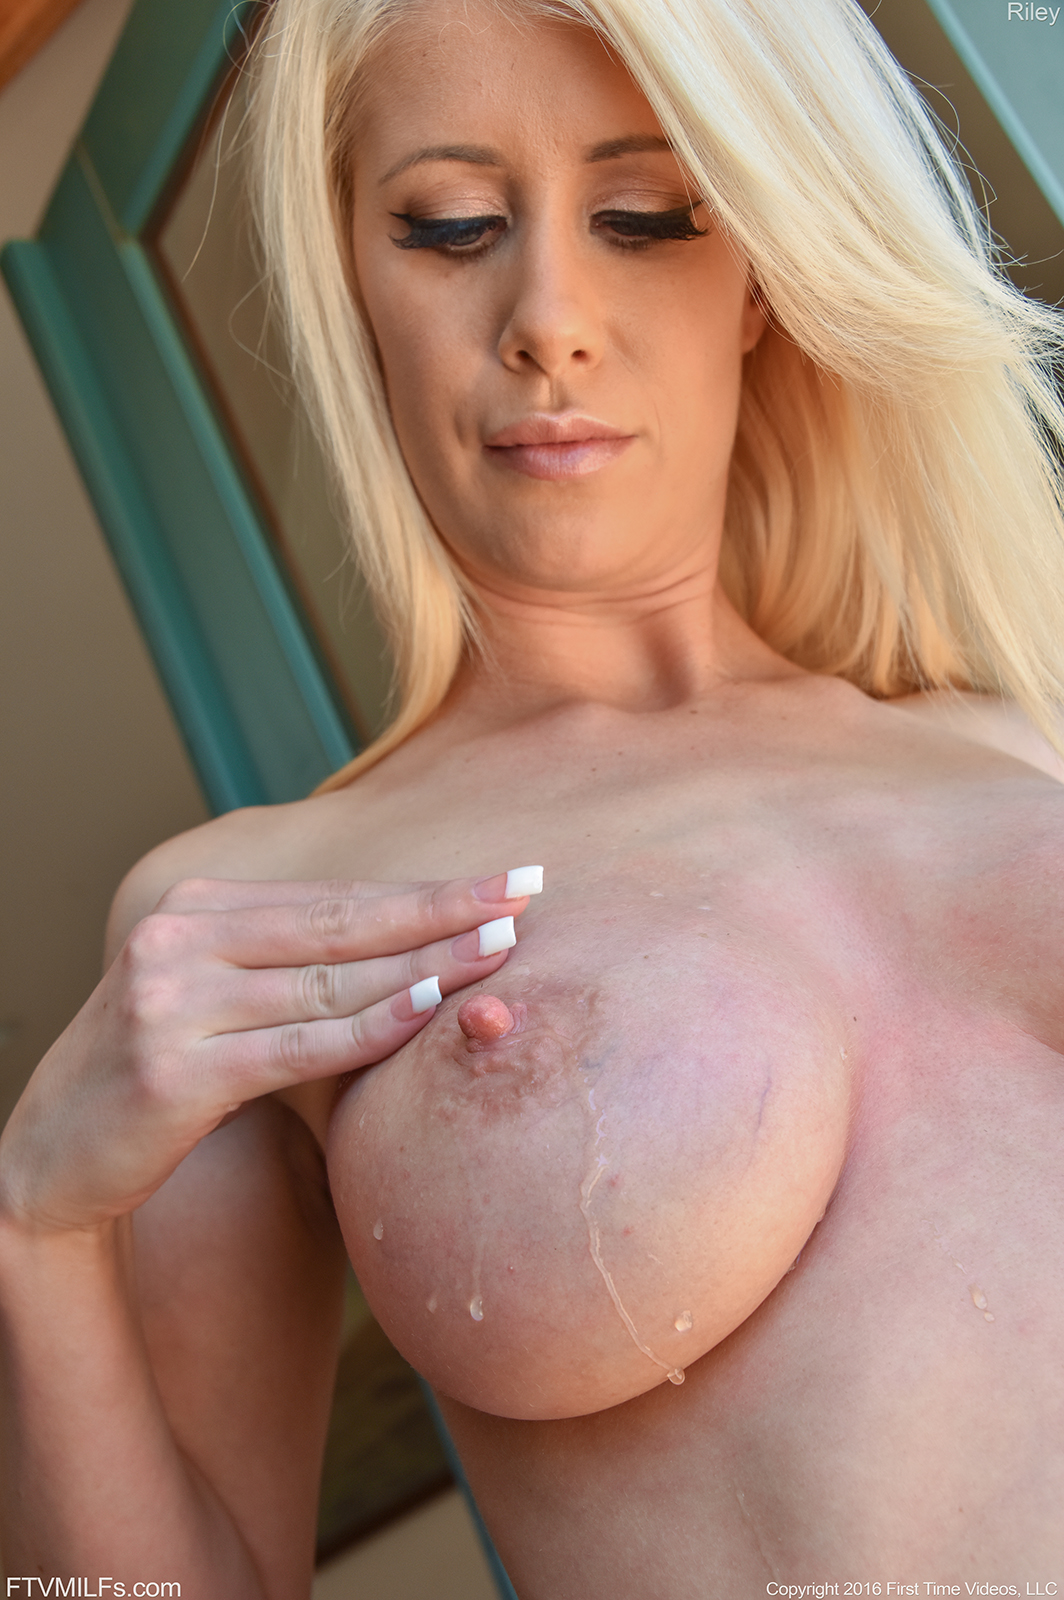 Hot naked girls squeezing their their big boobs